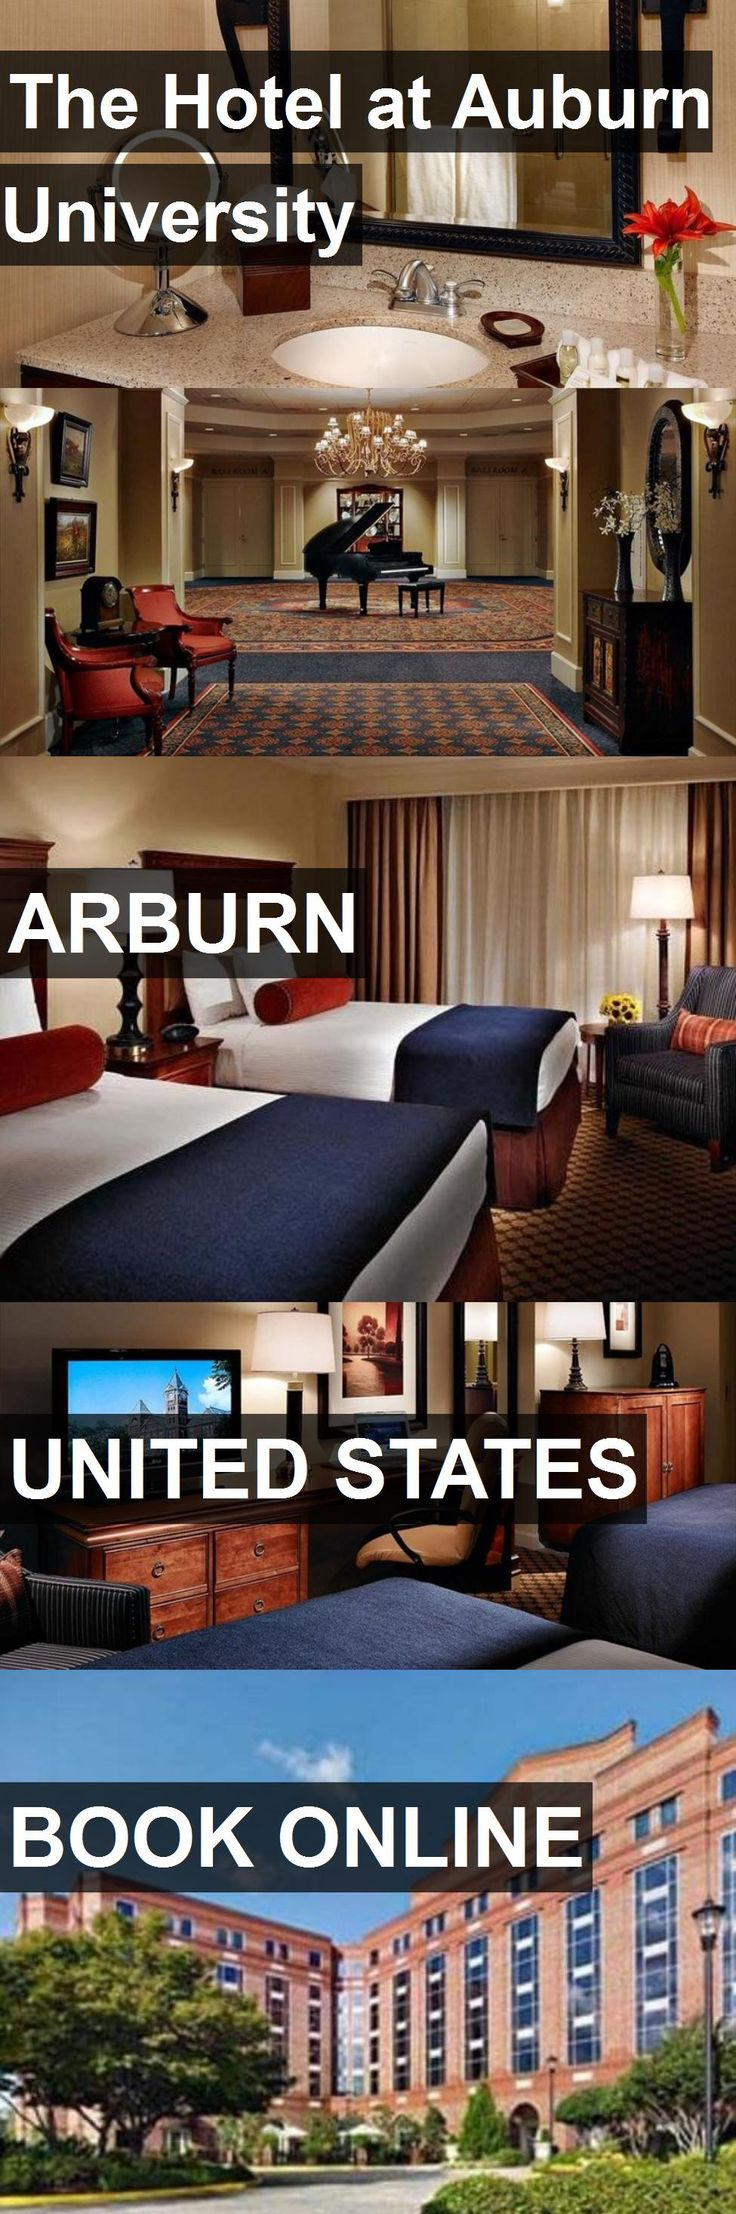 The Hotel at Auburn University in Arburn, United States. For more information, photos, reviews and best prices please follow the link. #UnitedStates #Arburn #travel #vacation #hotel